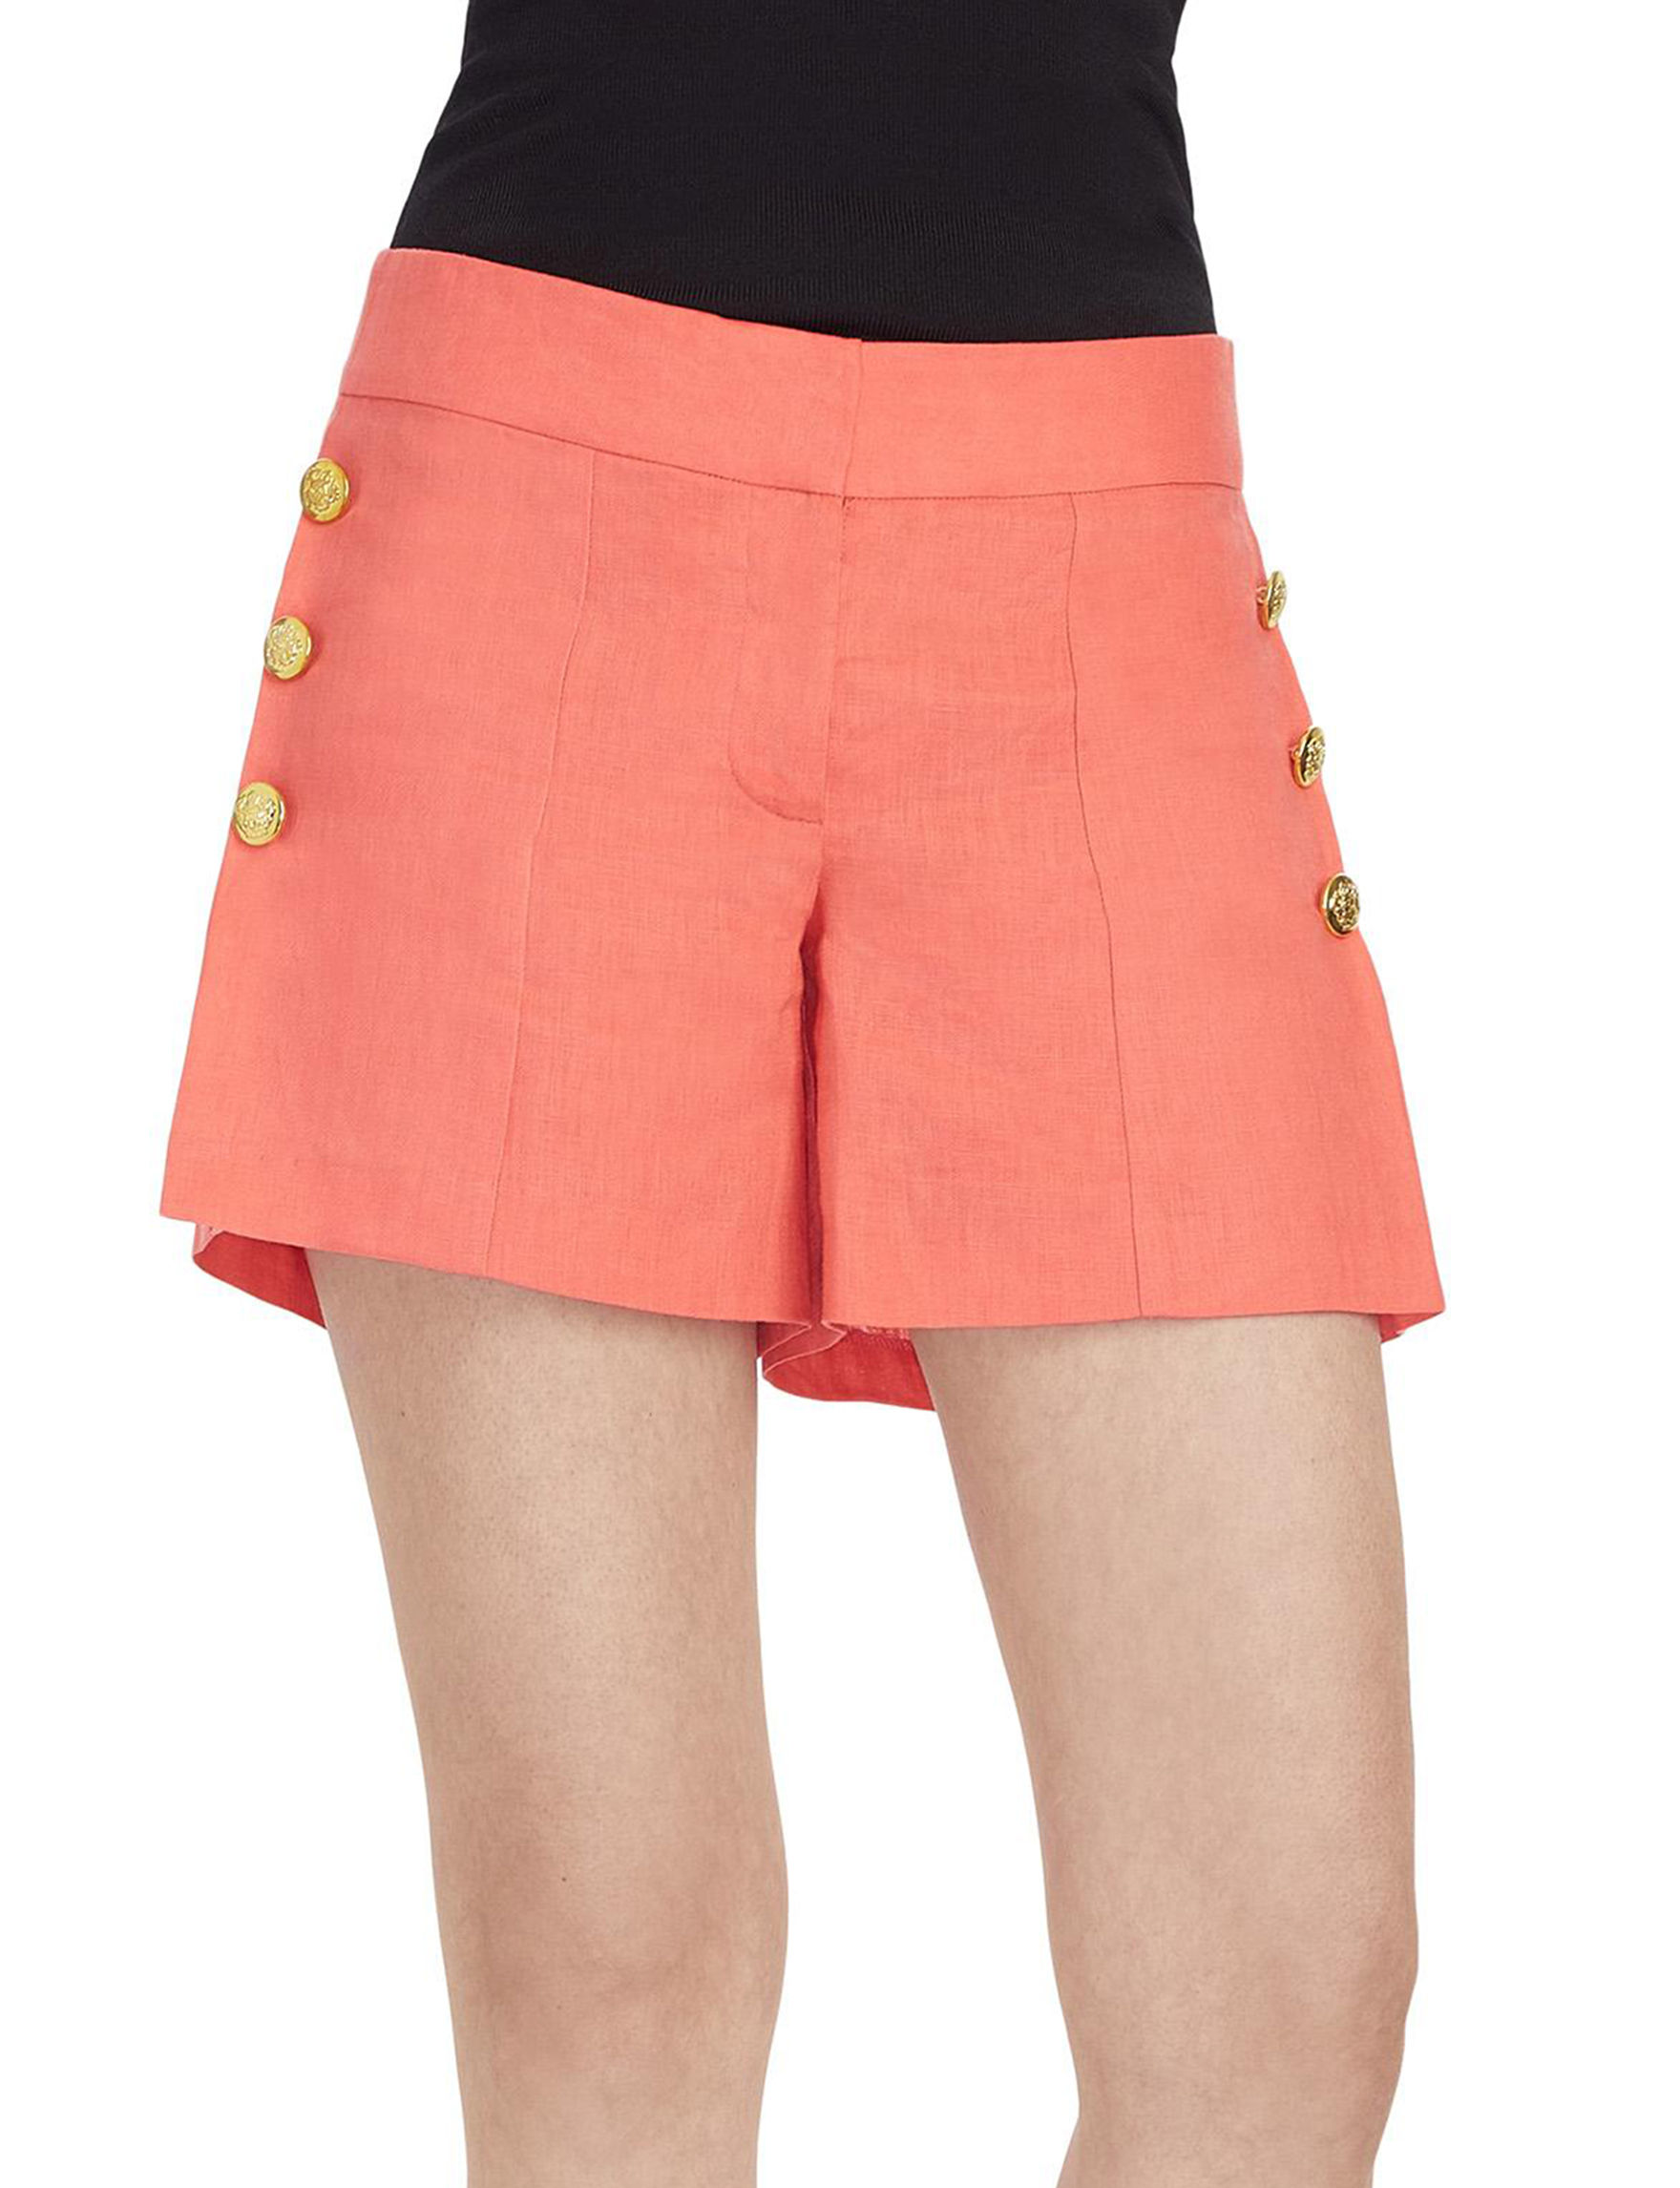 XOXO Coral Soft Shorts